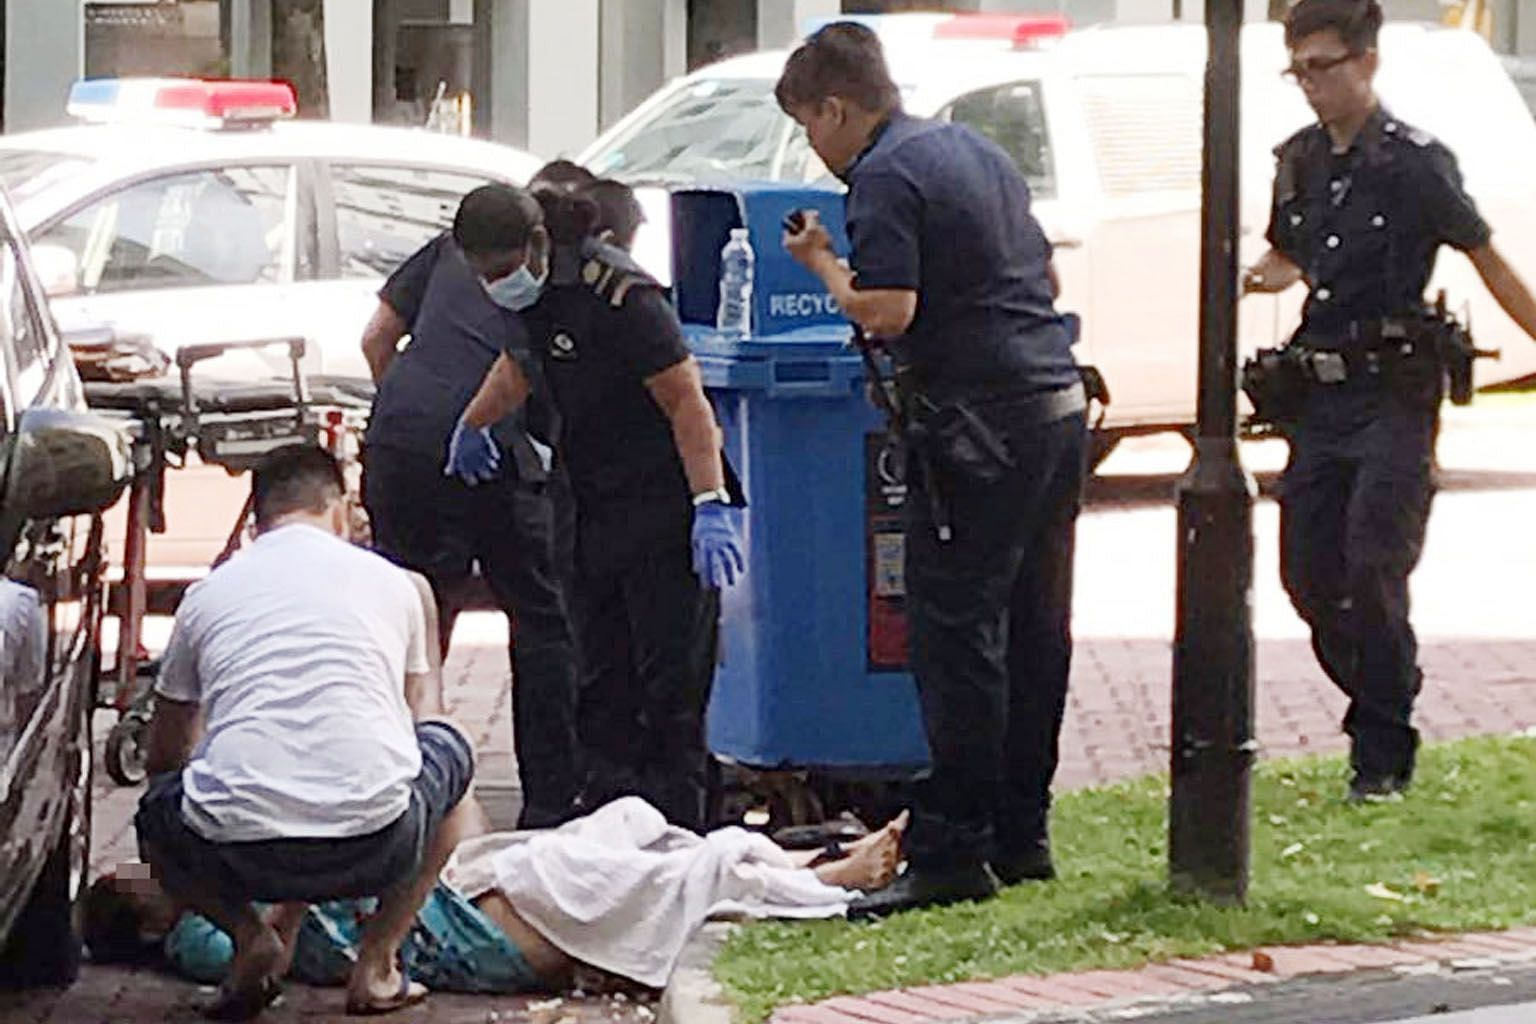 The accused's ex-wife being tended to by ambulance staff as she lay on the ground after the slashing in October 2016.